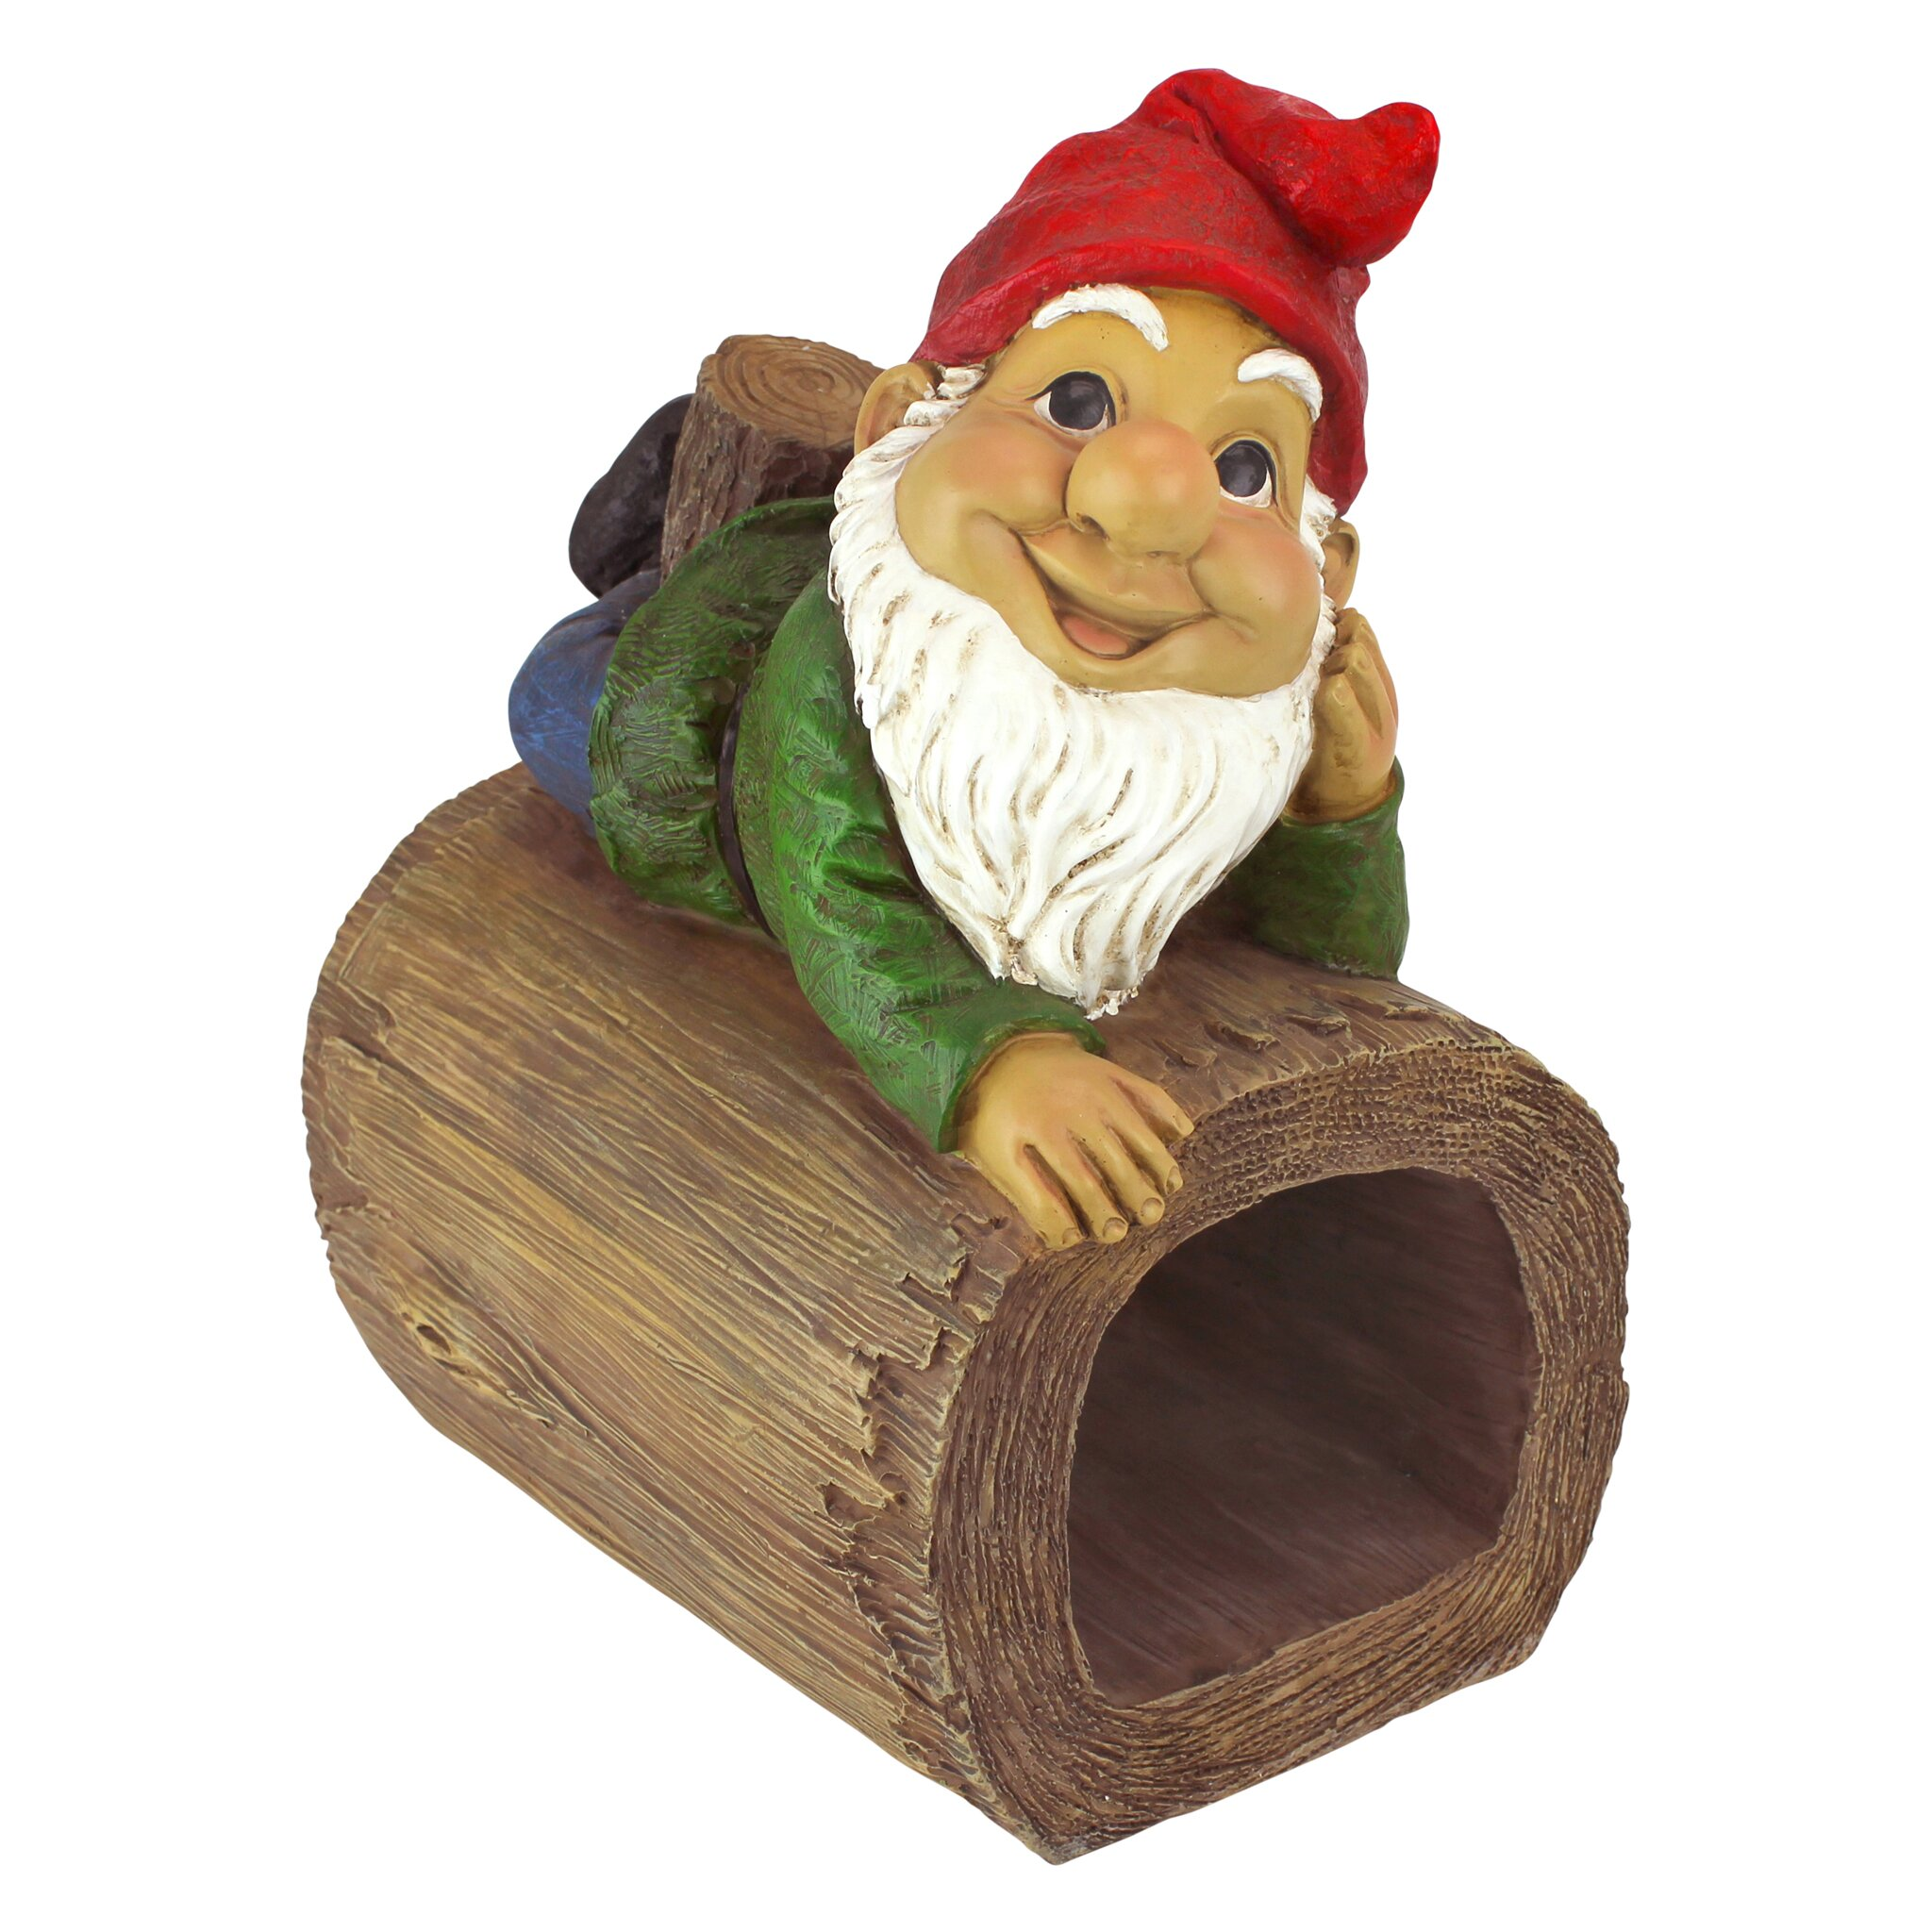 Design toscano stormy the gnome gutter guardian downspout for Design tuscany